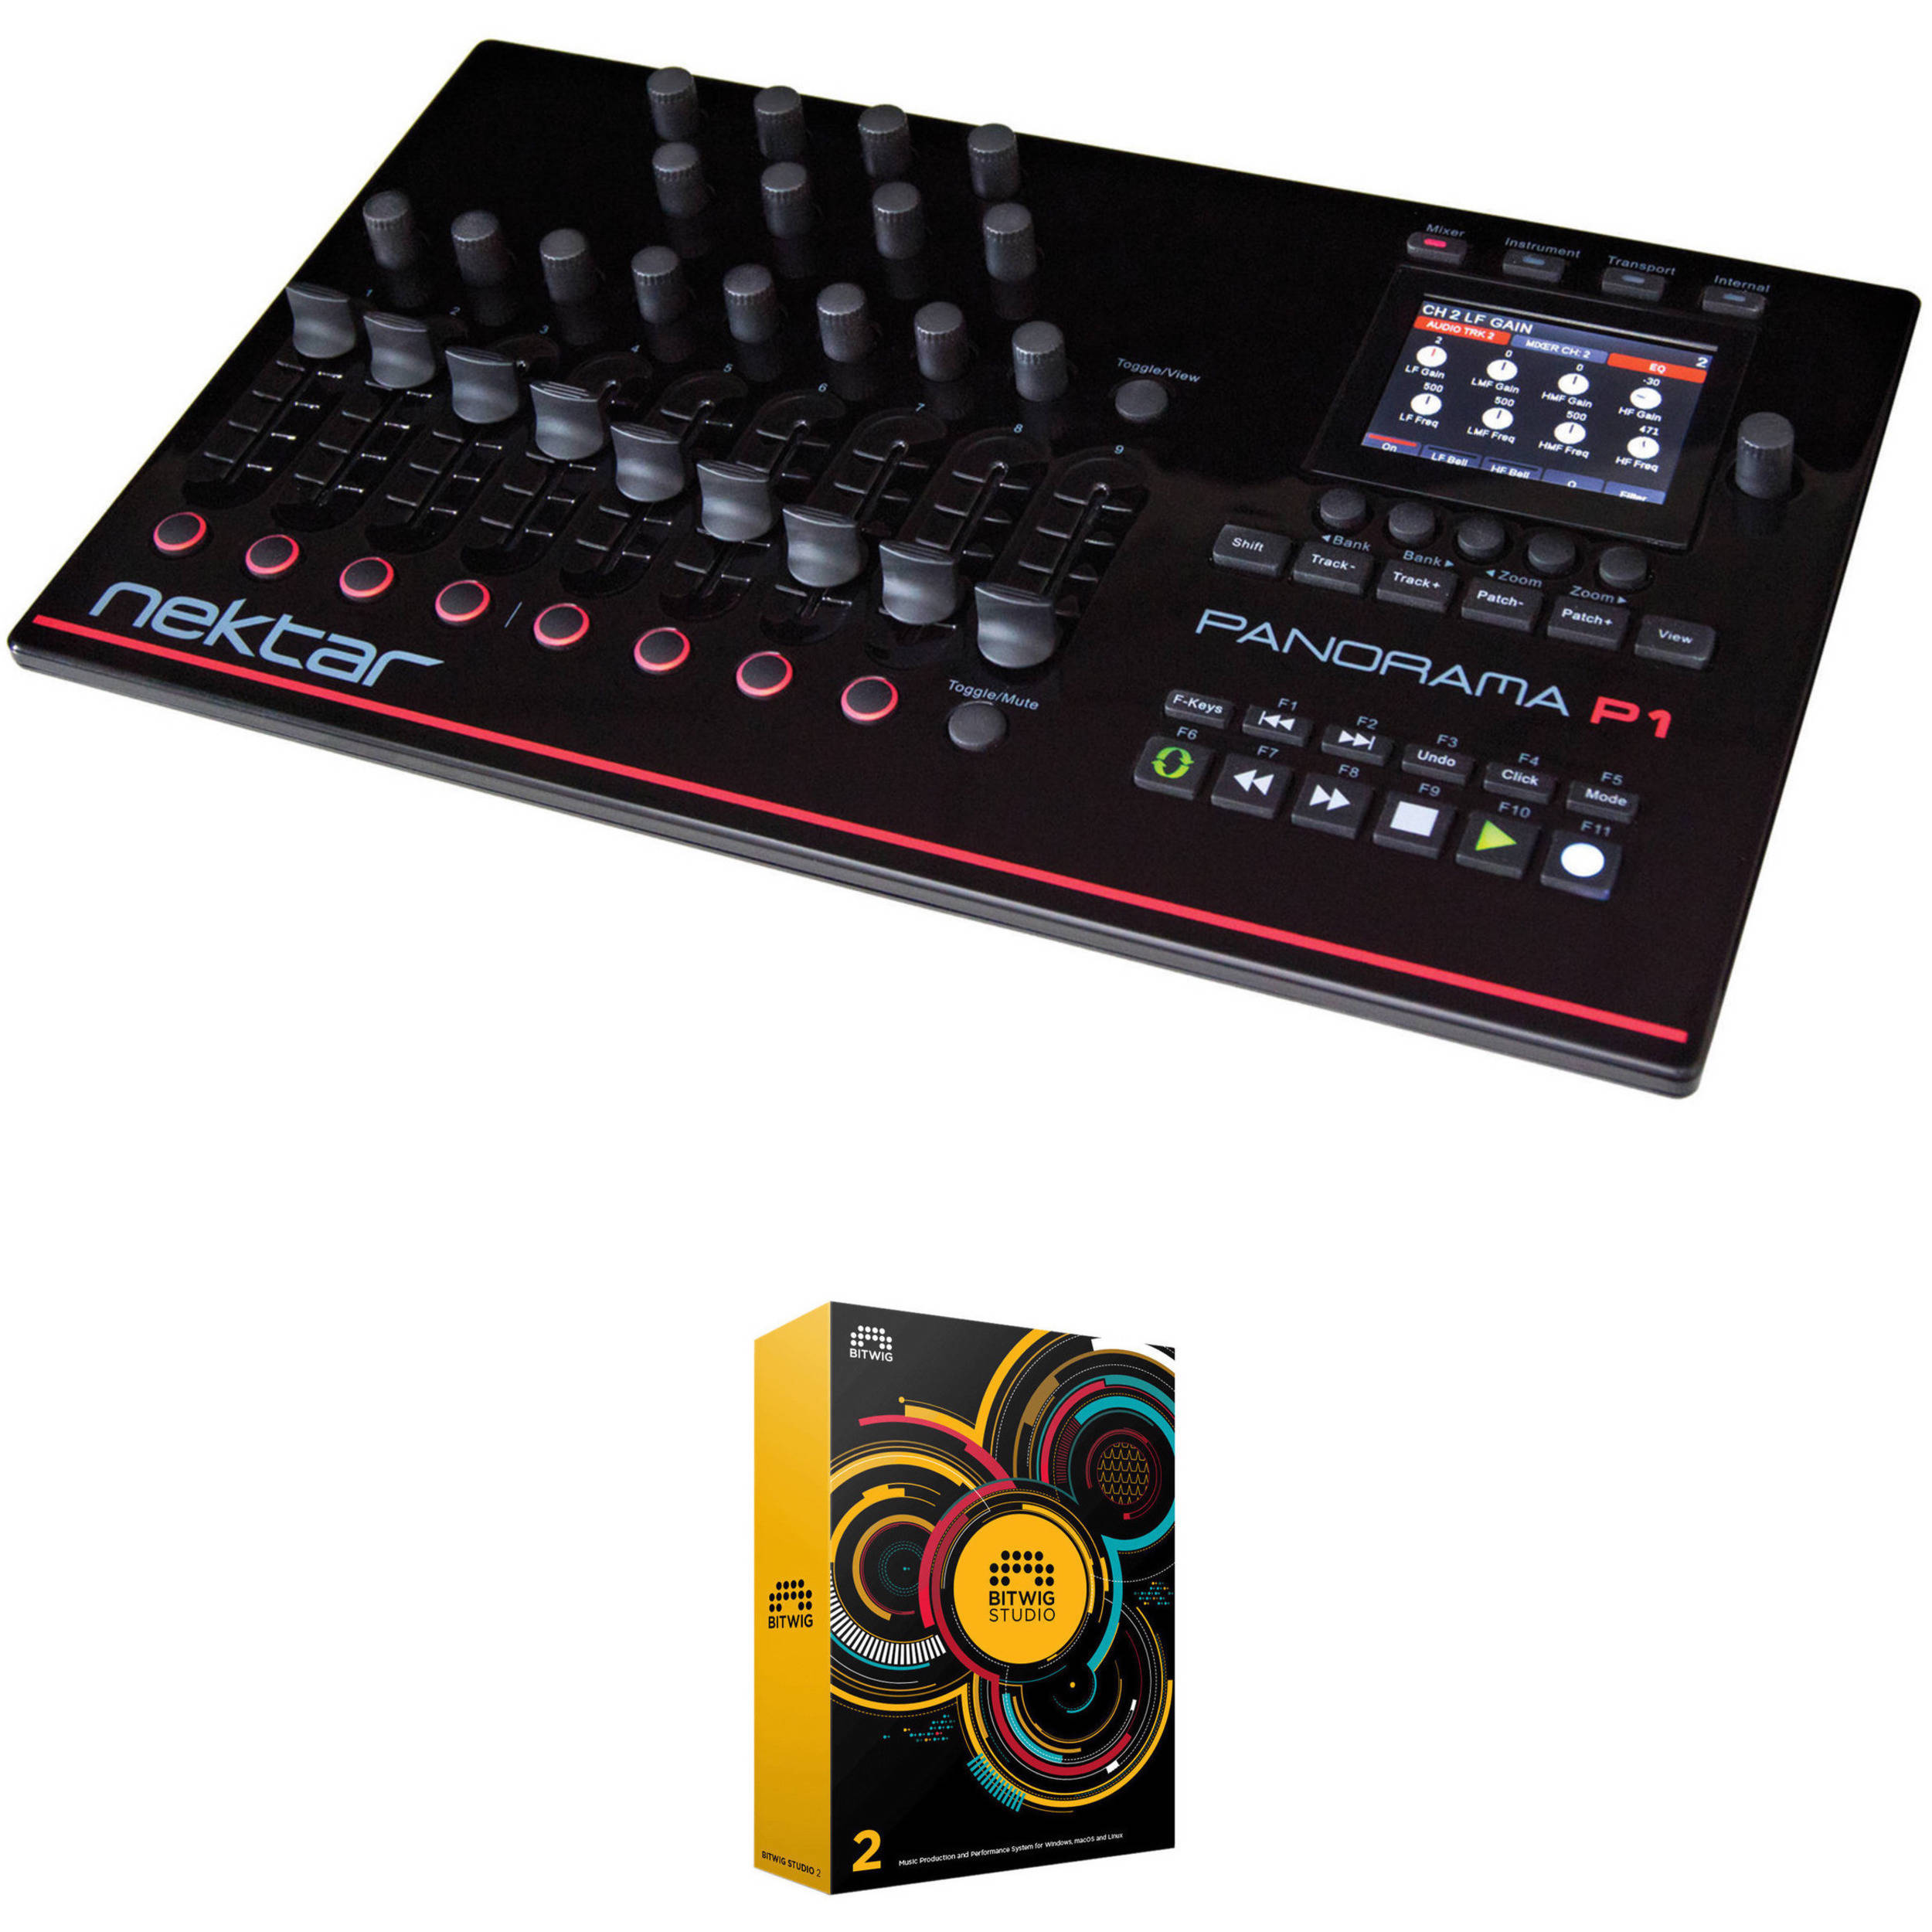 nektar technology panorama p1 midi controller and bitwig daw kit. Black Bedroom Furniture Sets. Home Design Ideas